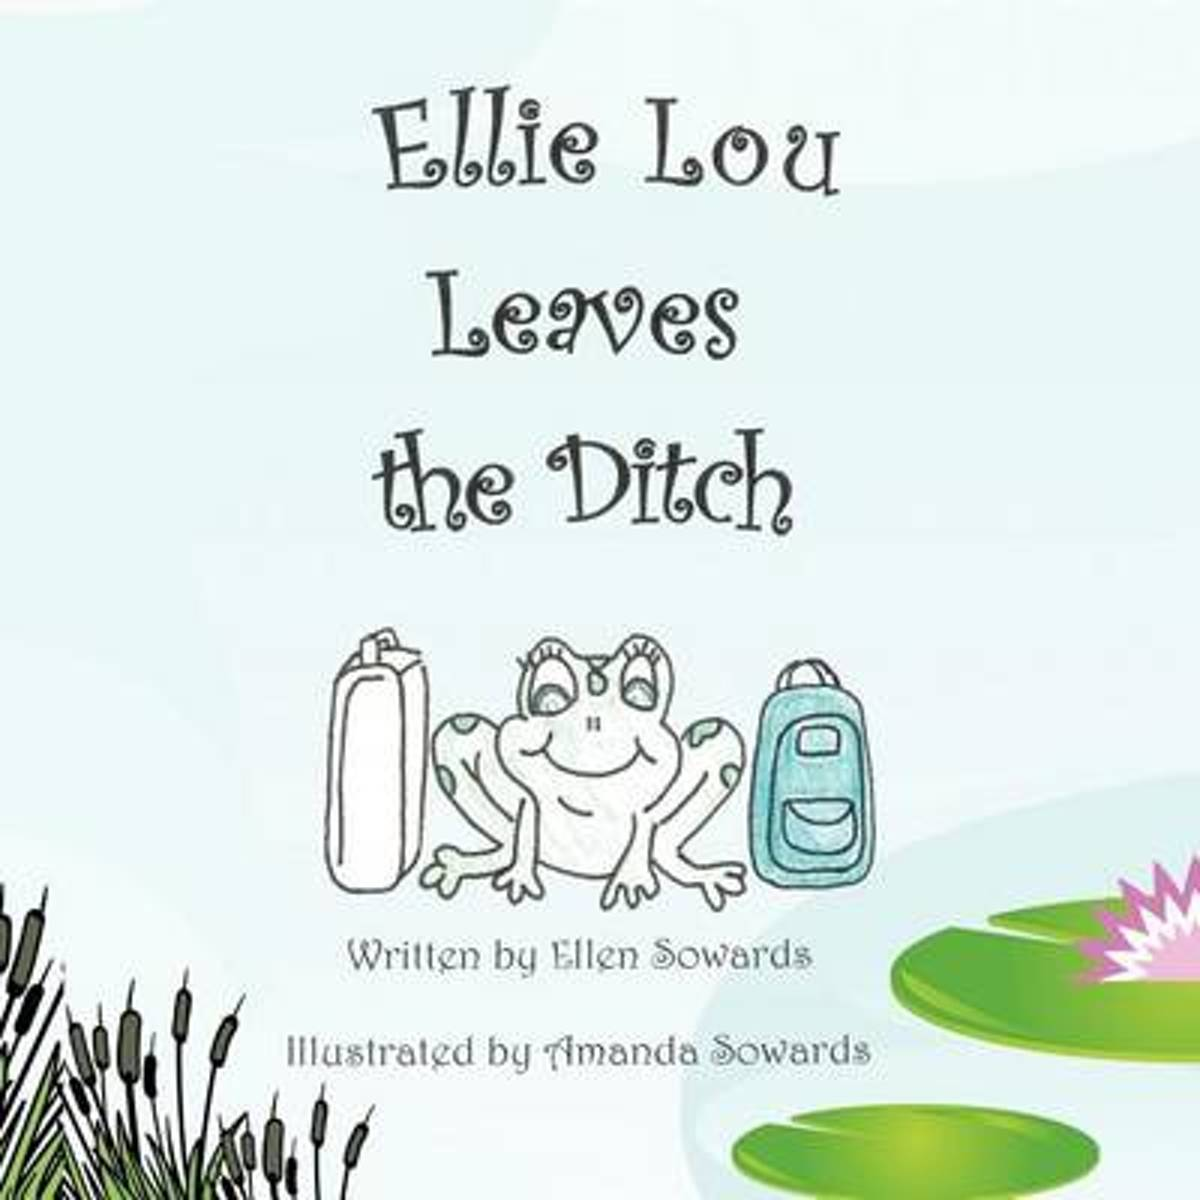 Ellie Lou Leaves The Ditch